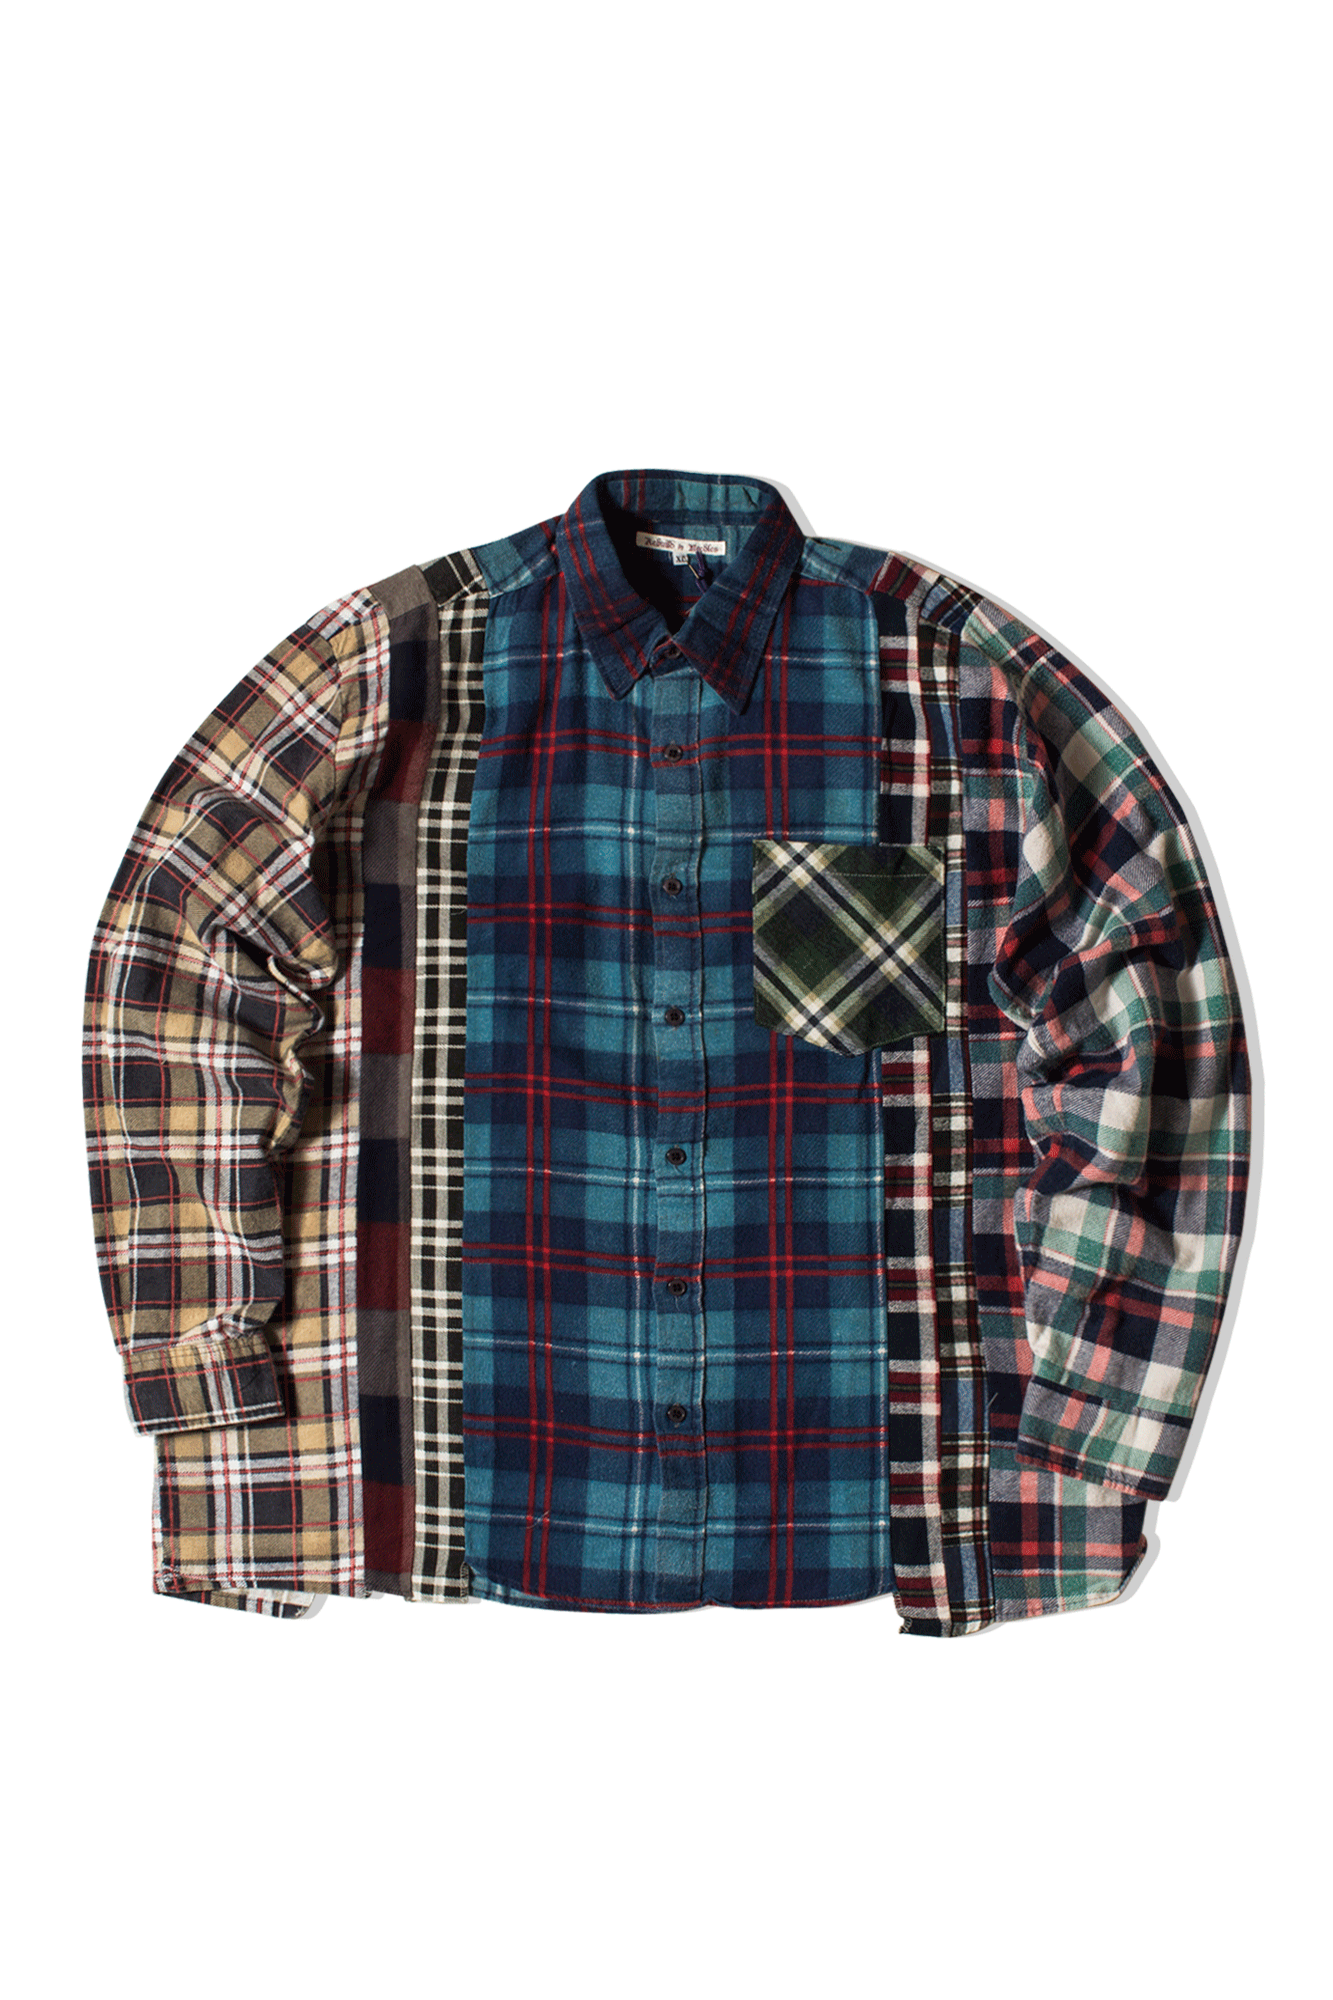 7 Cuts Flannel Shirt Multicolore